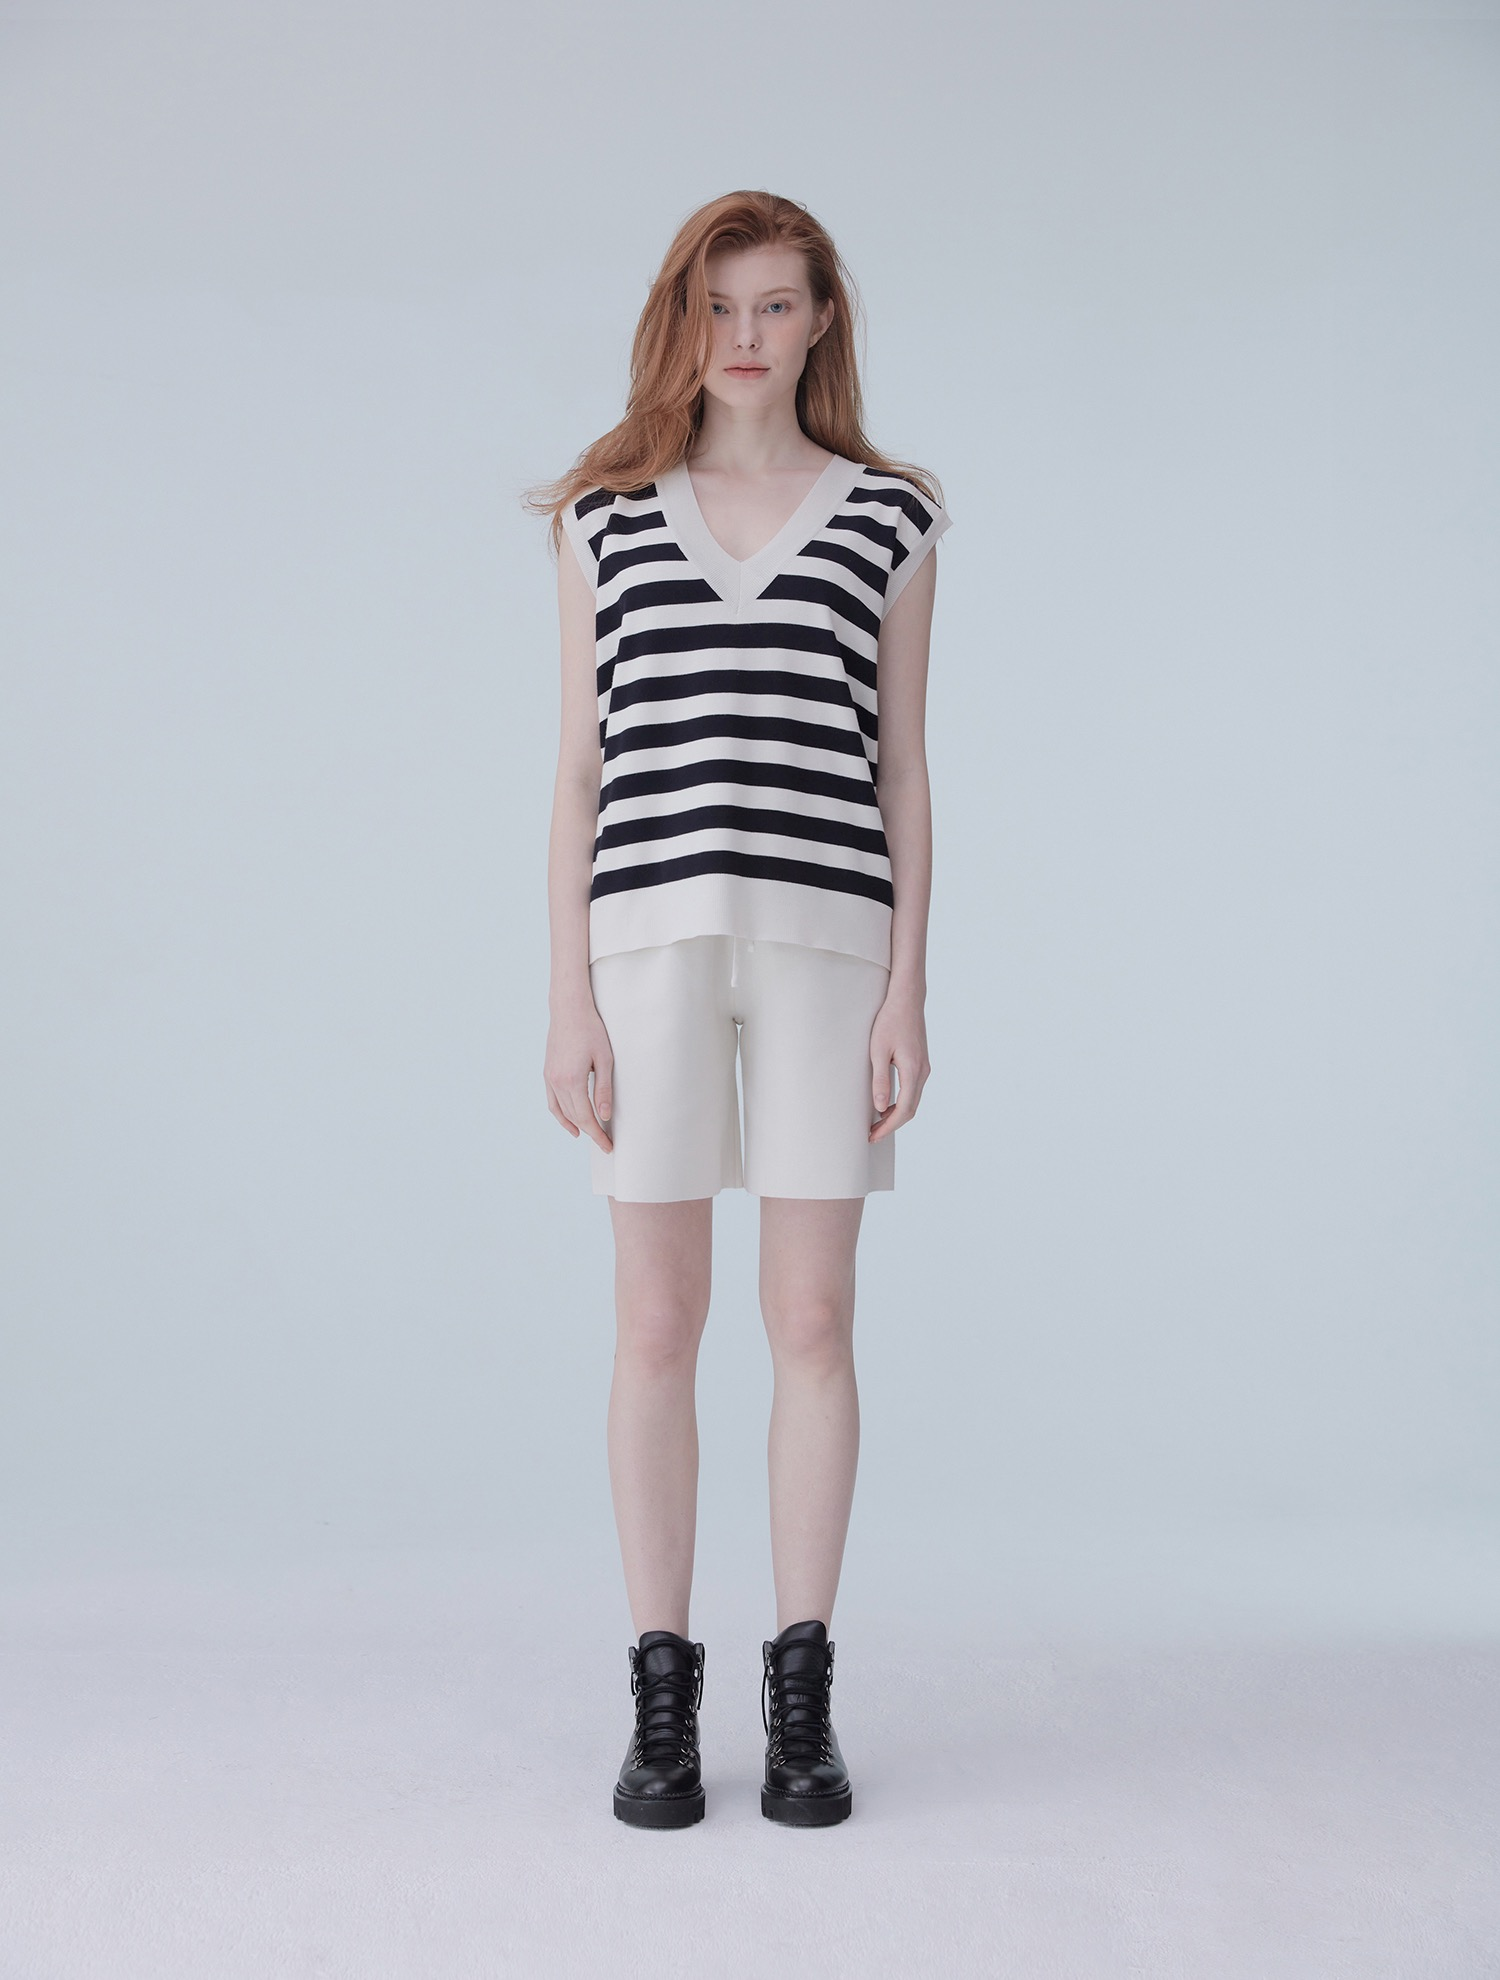 Stripe v-neck knit vest 001 Ivory